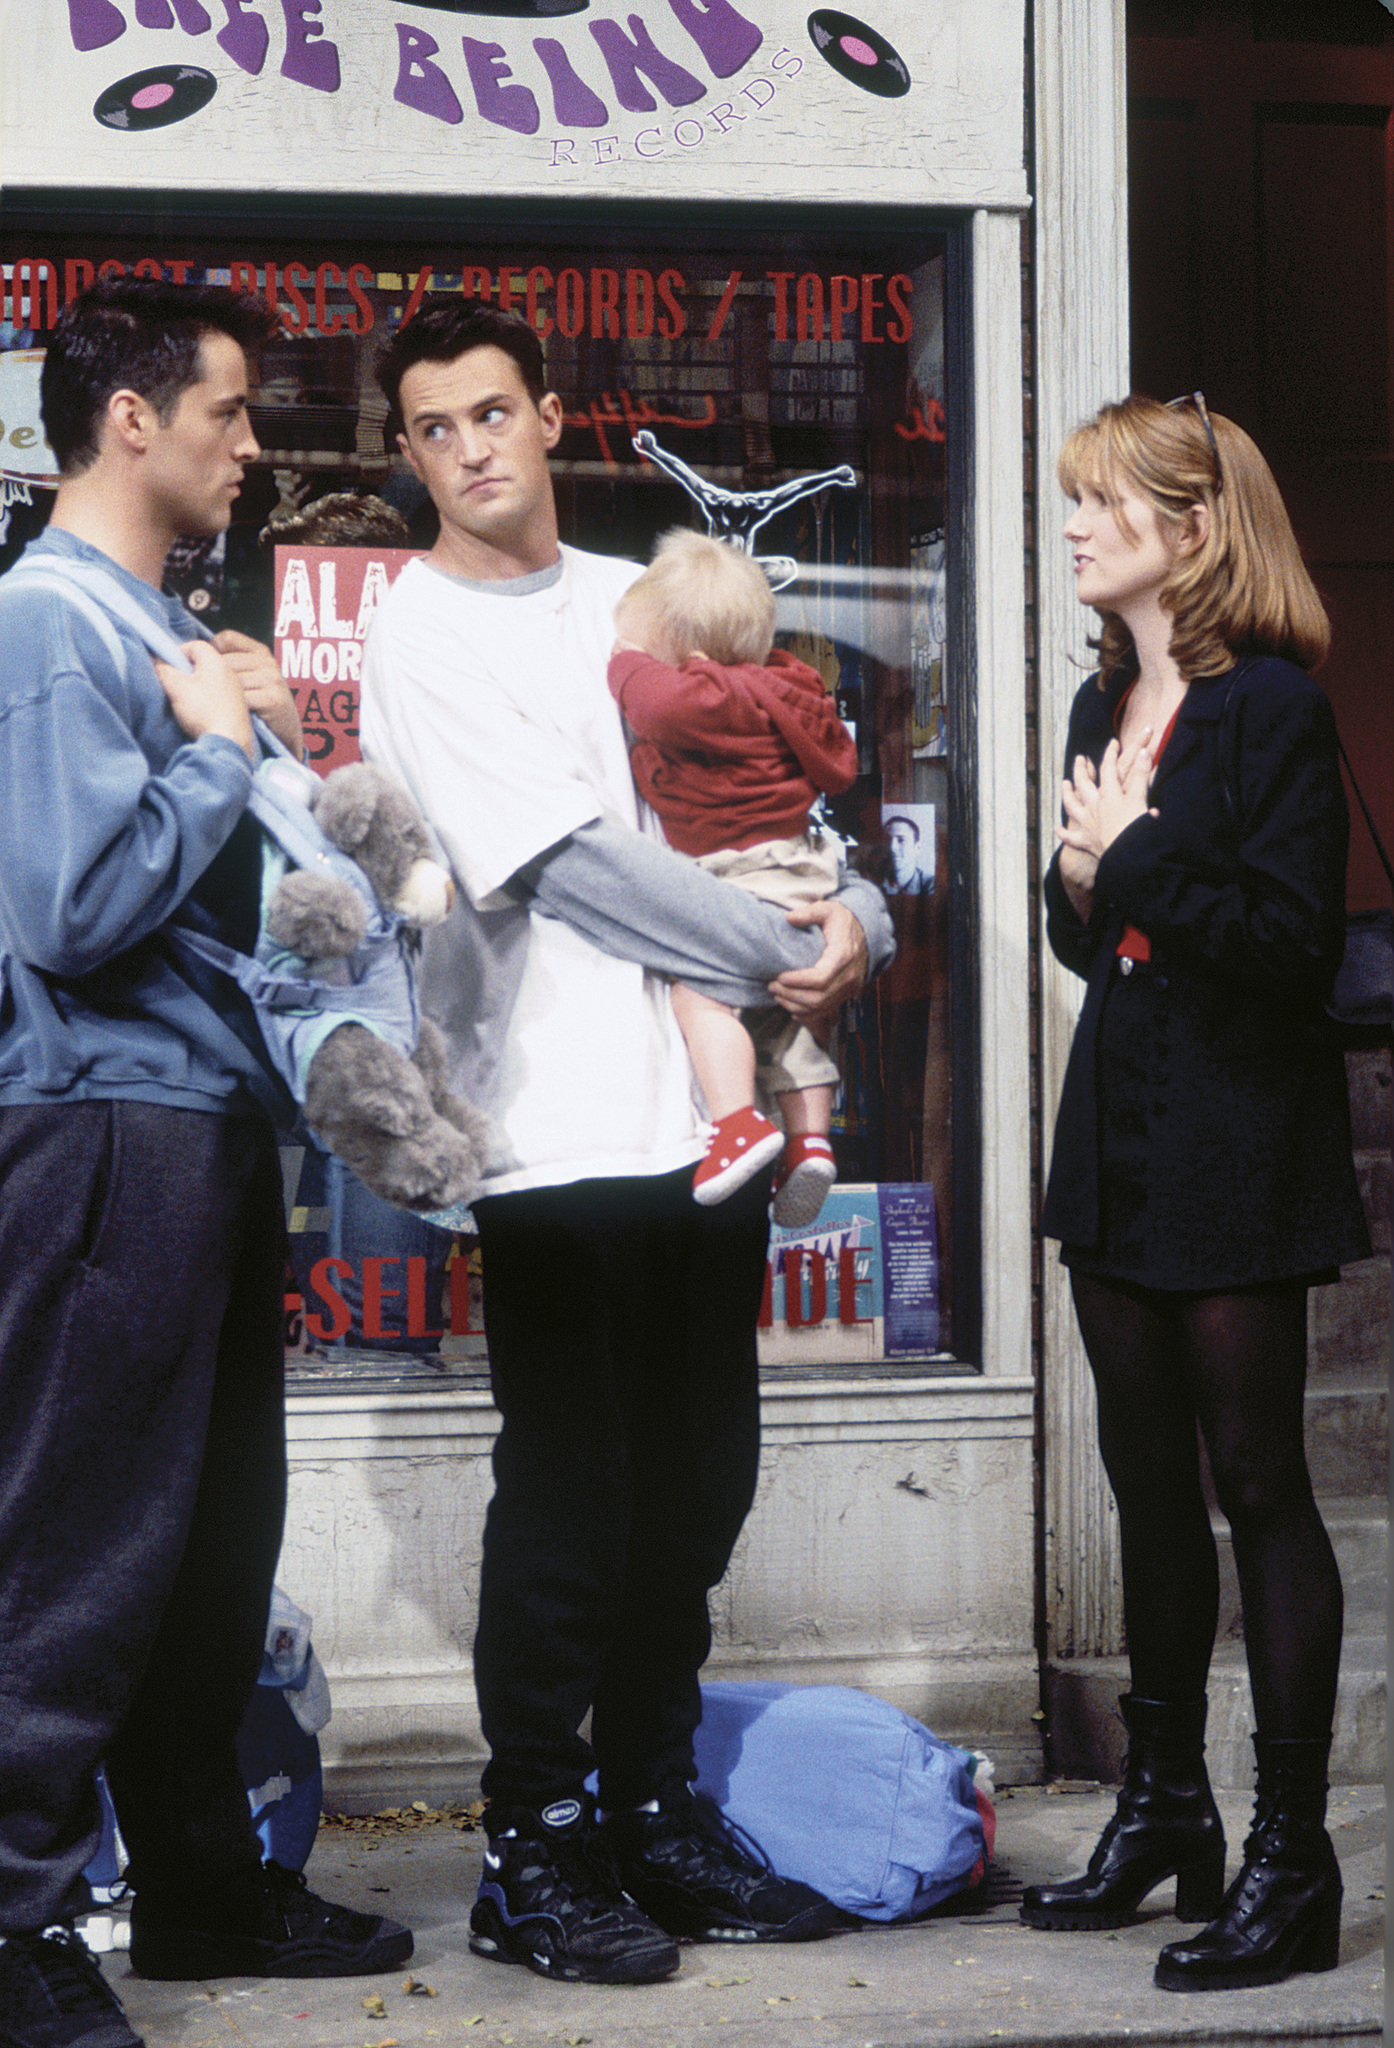 Friends: The One with the Baby on the Bus | Season 2 | Episode 6